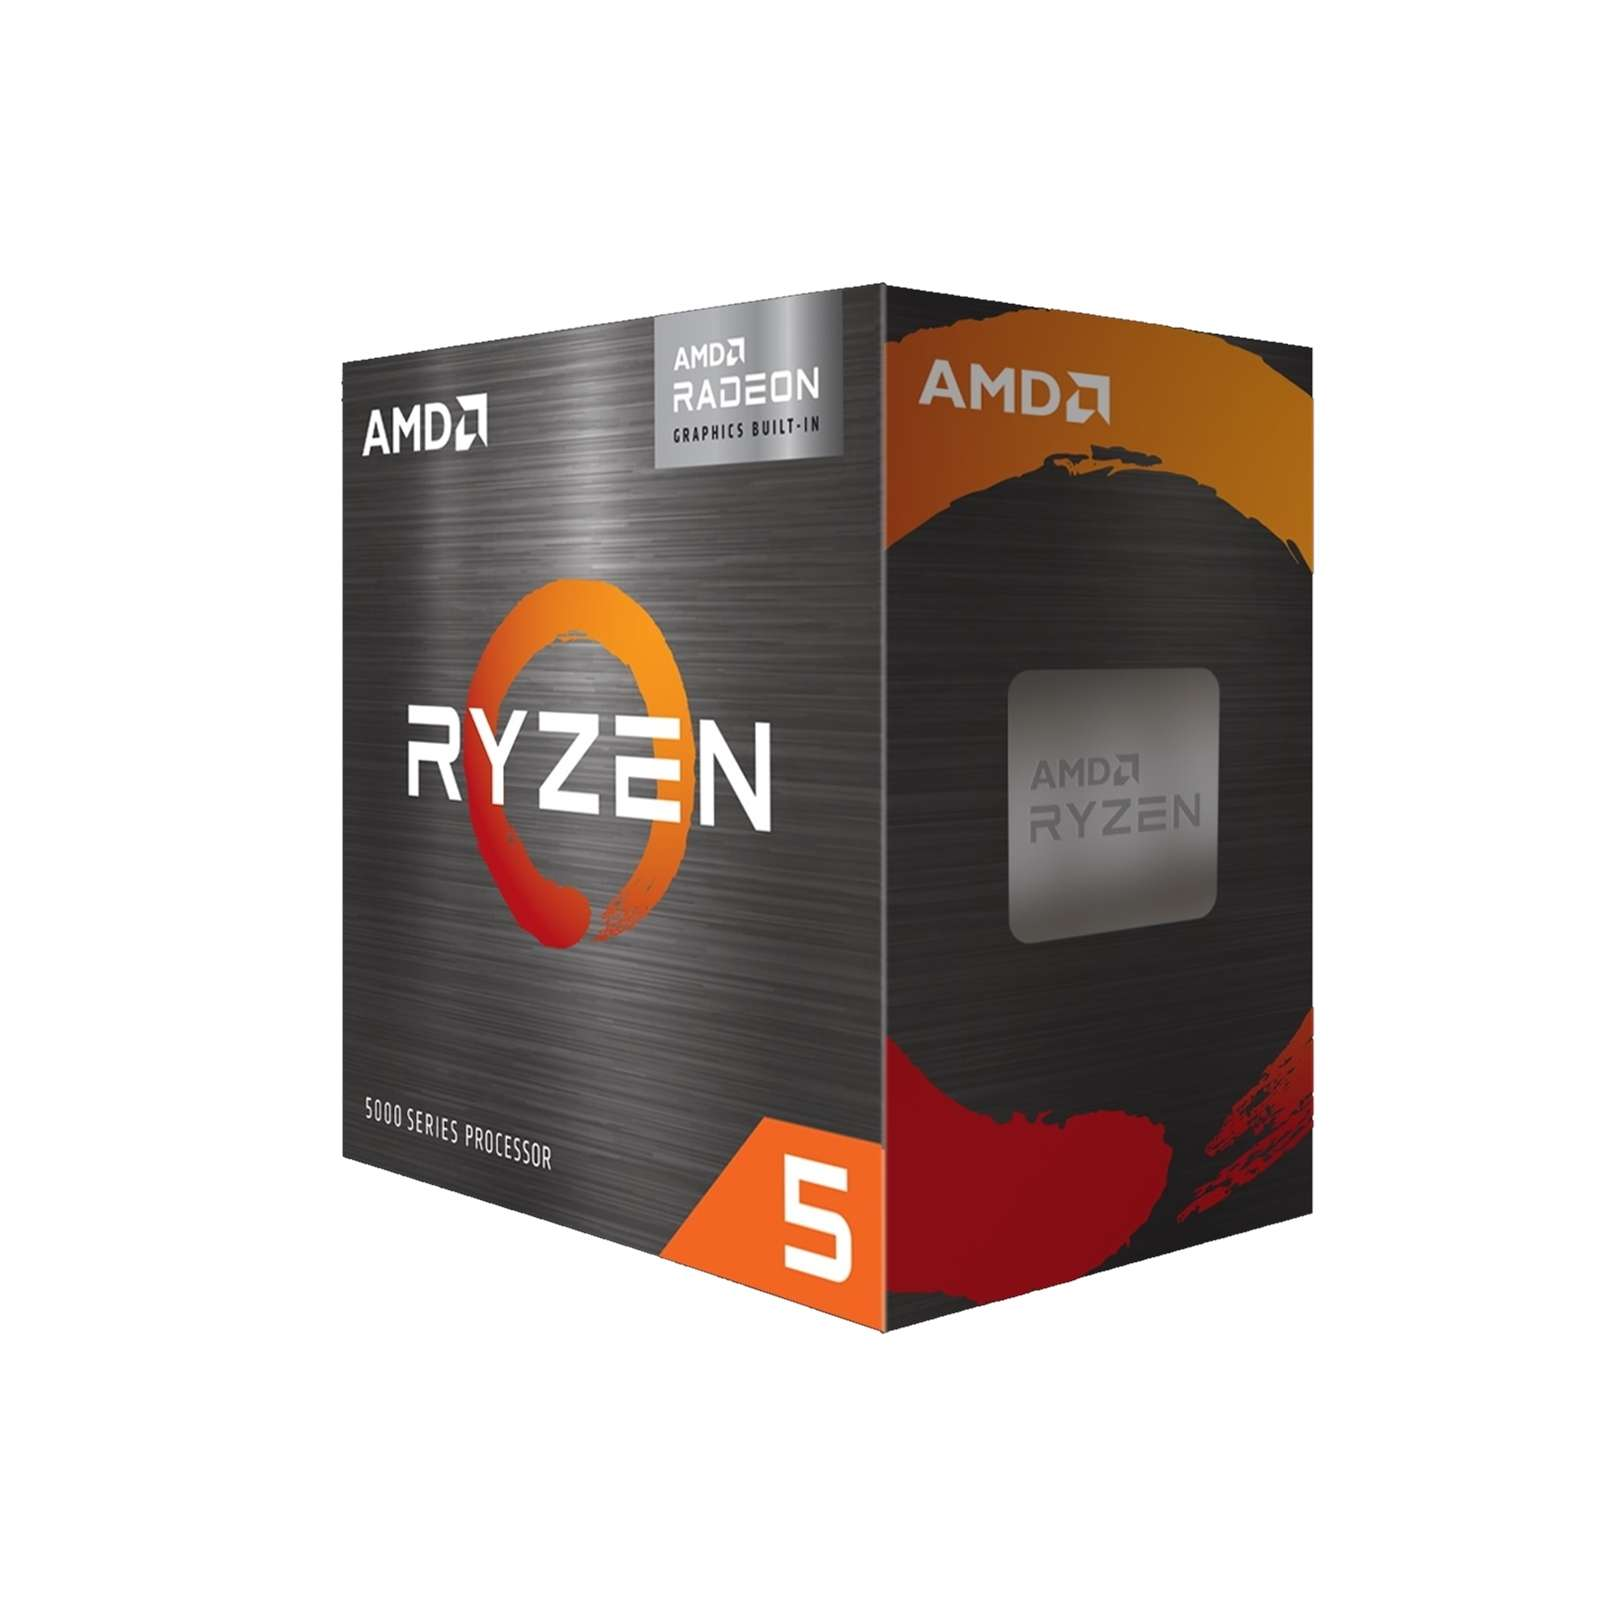 AMD Ryzen 5 5600G with Radeon Graphics and Wraith Stealth Cooler 3.9Ghz (6 cores, 12 threads, up to 4.4 GHz) Six Core AM4 Overclockable Processor